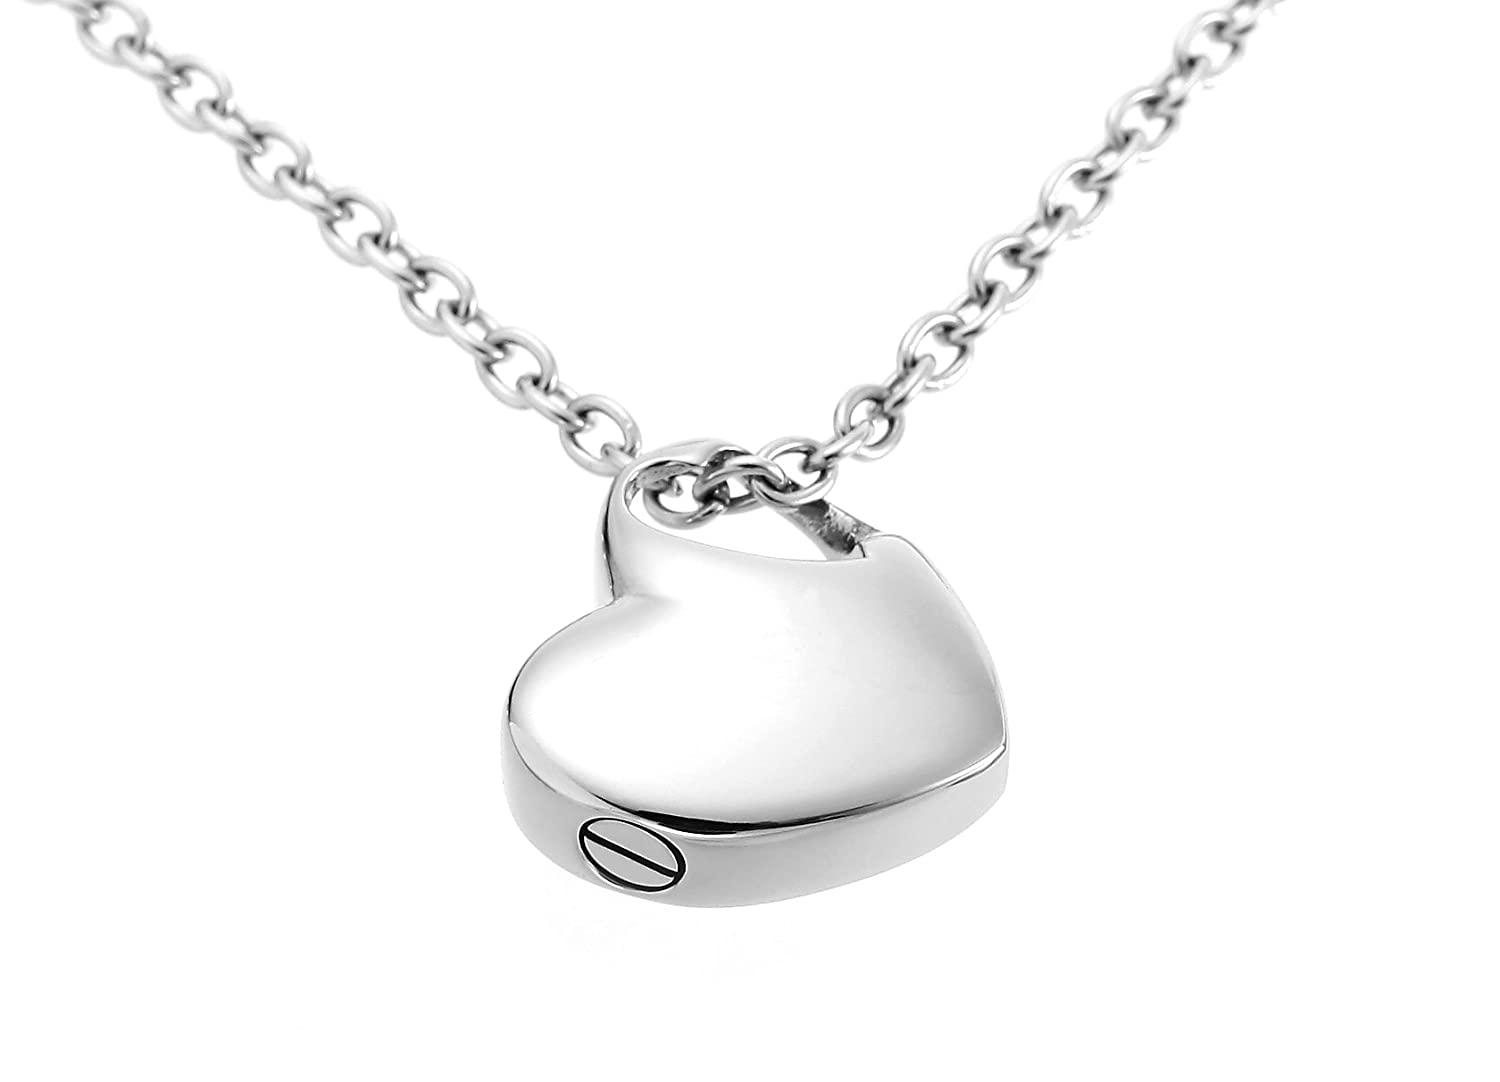 d83b96a3e9dd1 Hold My Heart Pendant Cremation Urn Jewelry Necklace with Filler Kit Ashes